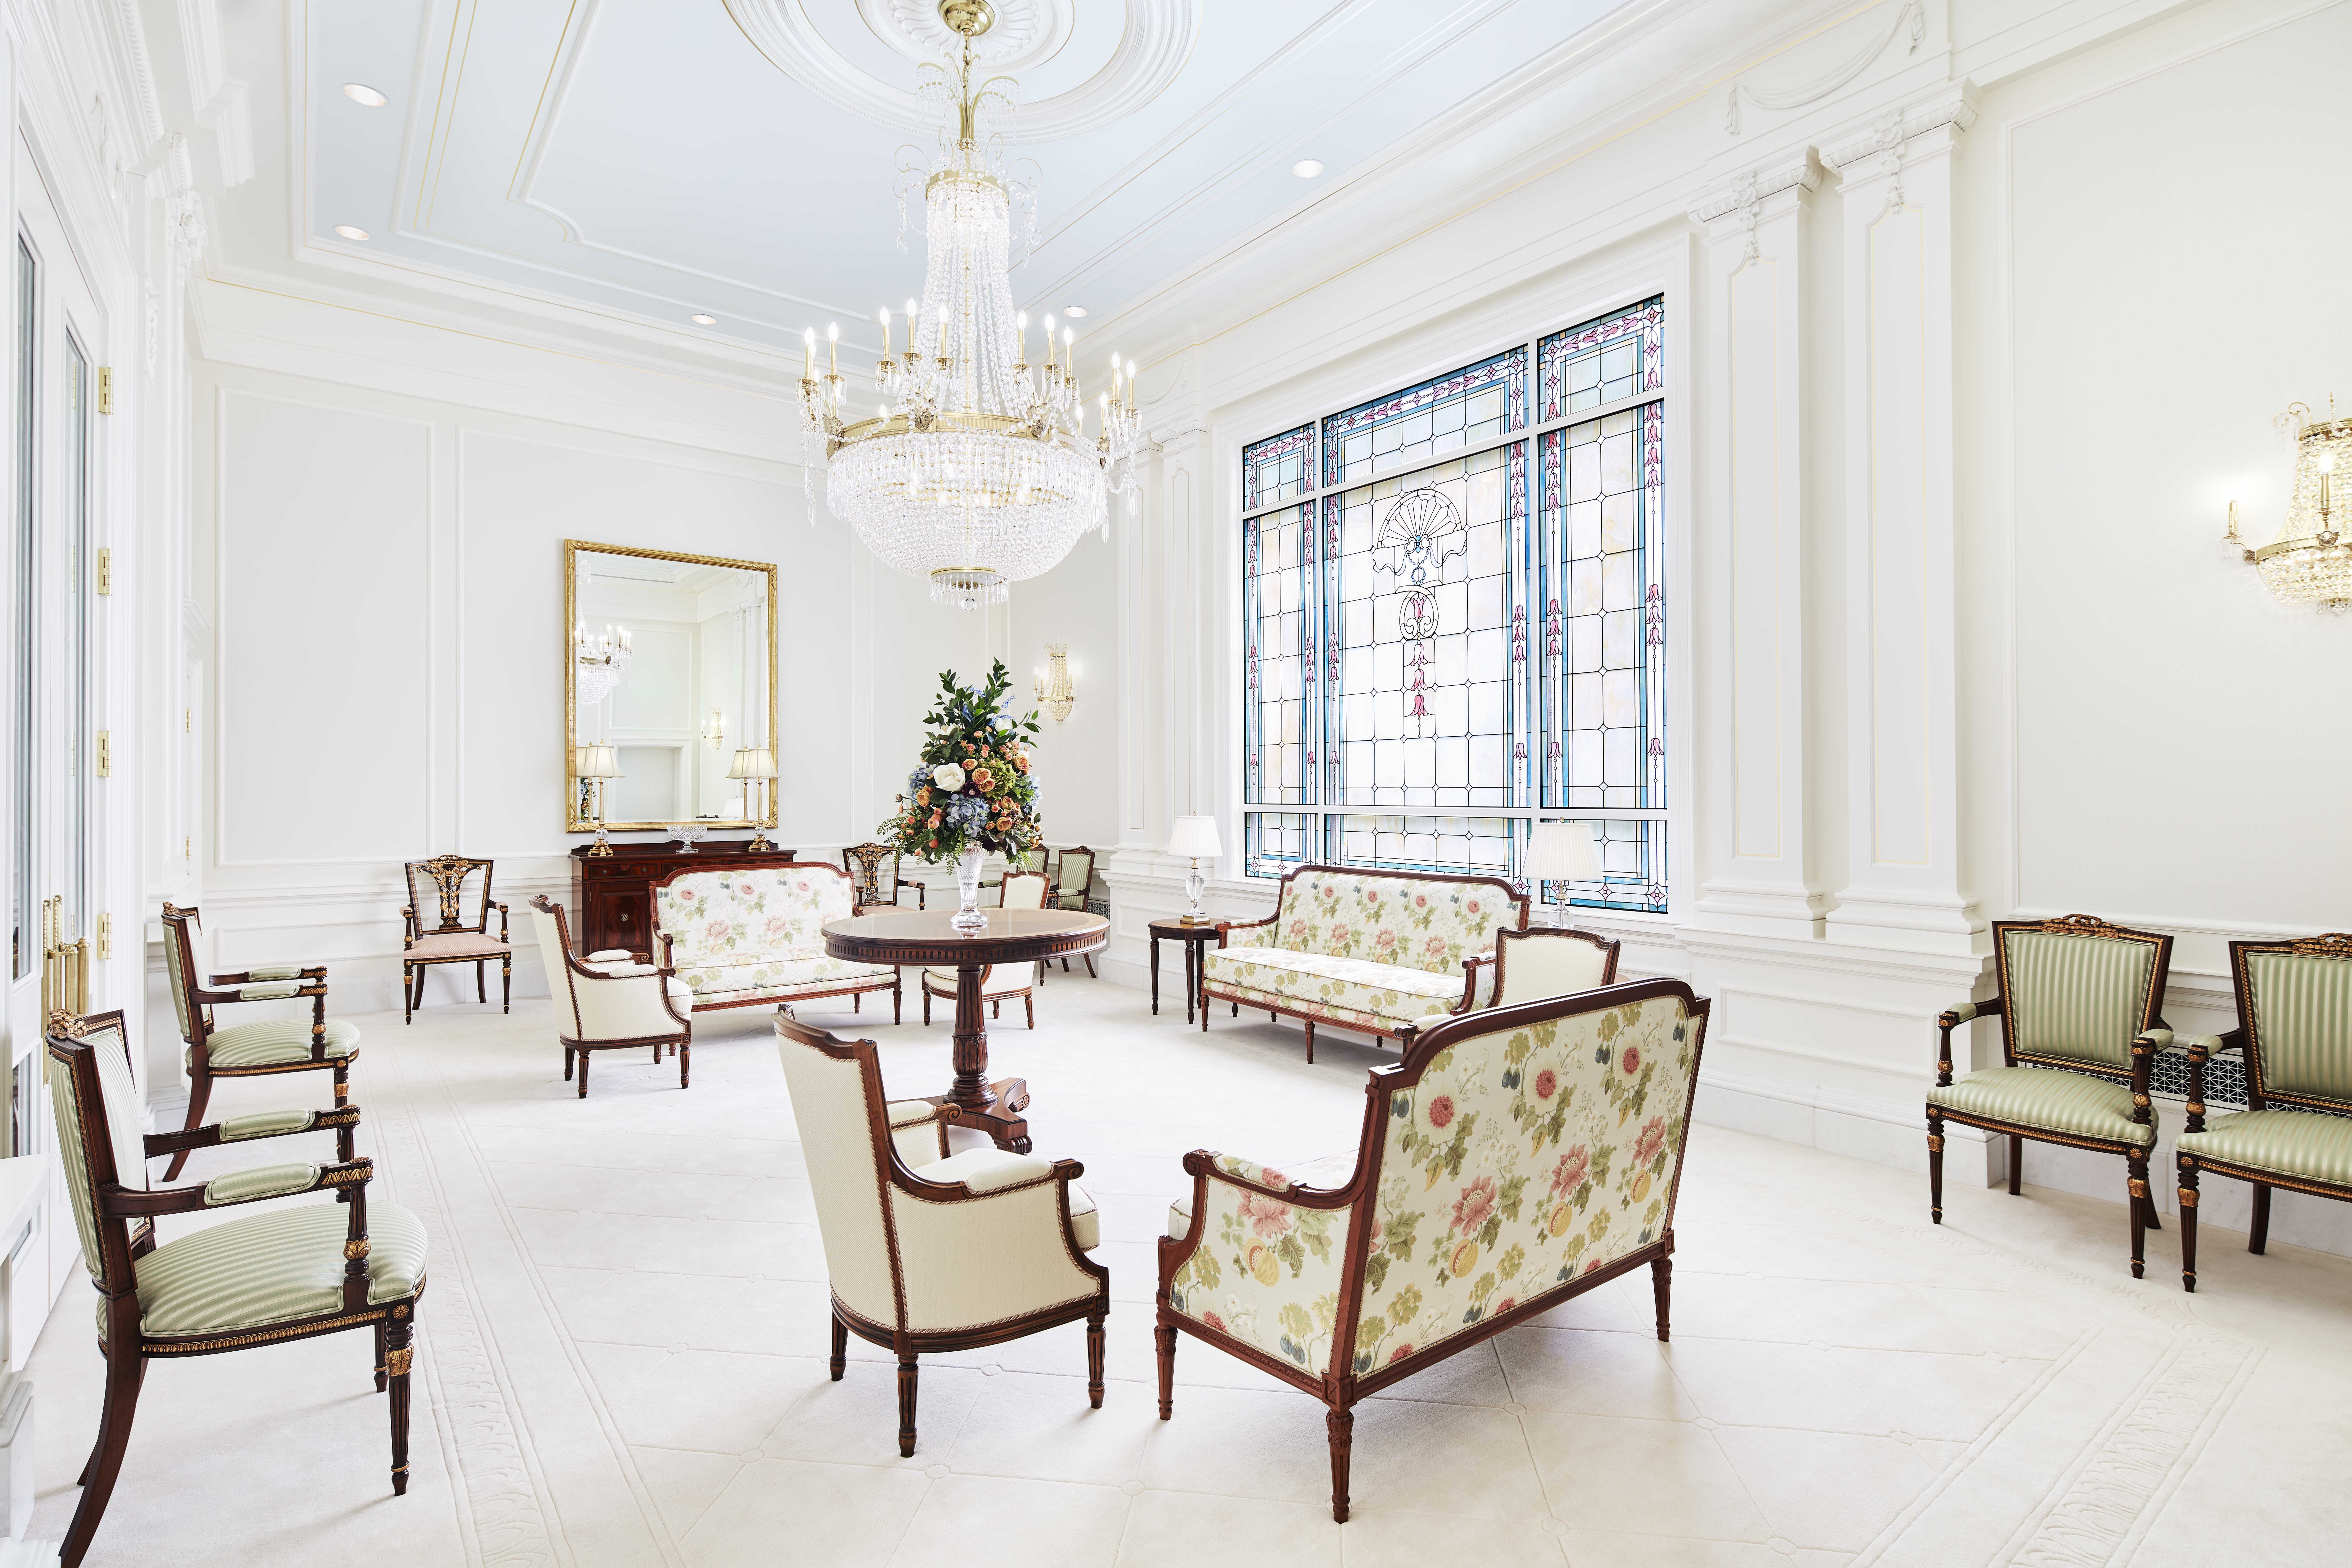 The celestial room in the Memphis Tennessee Temple.